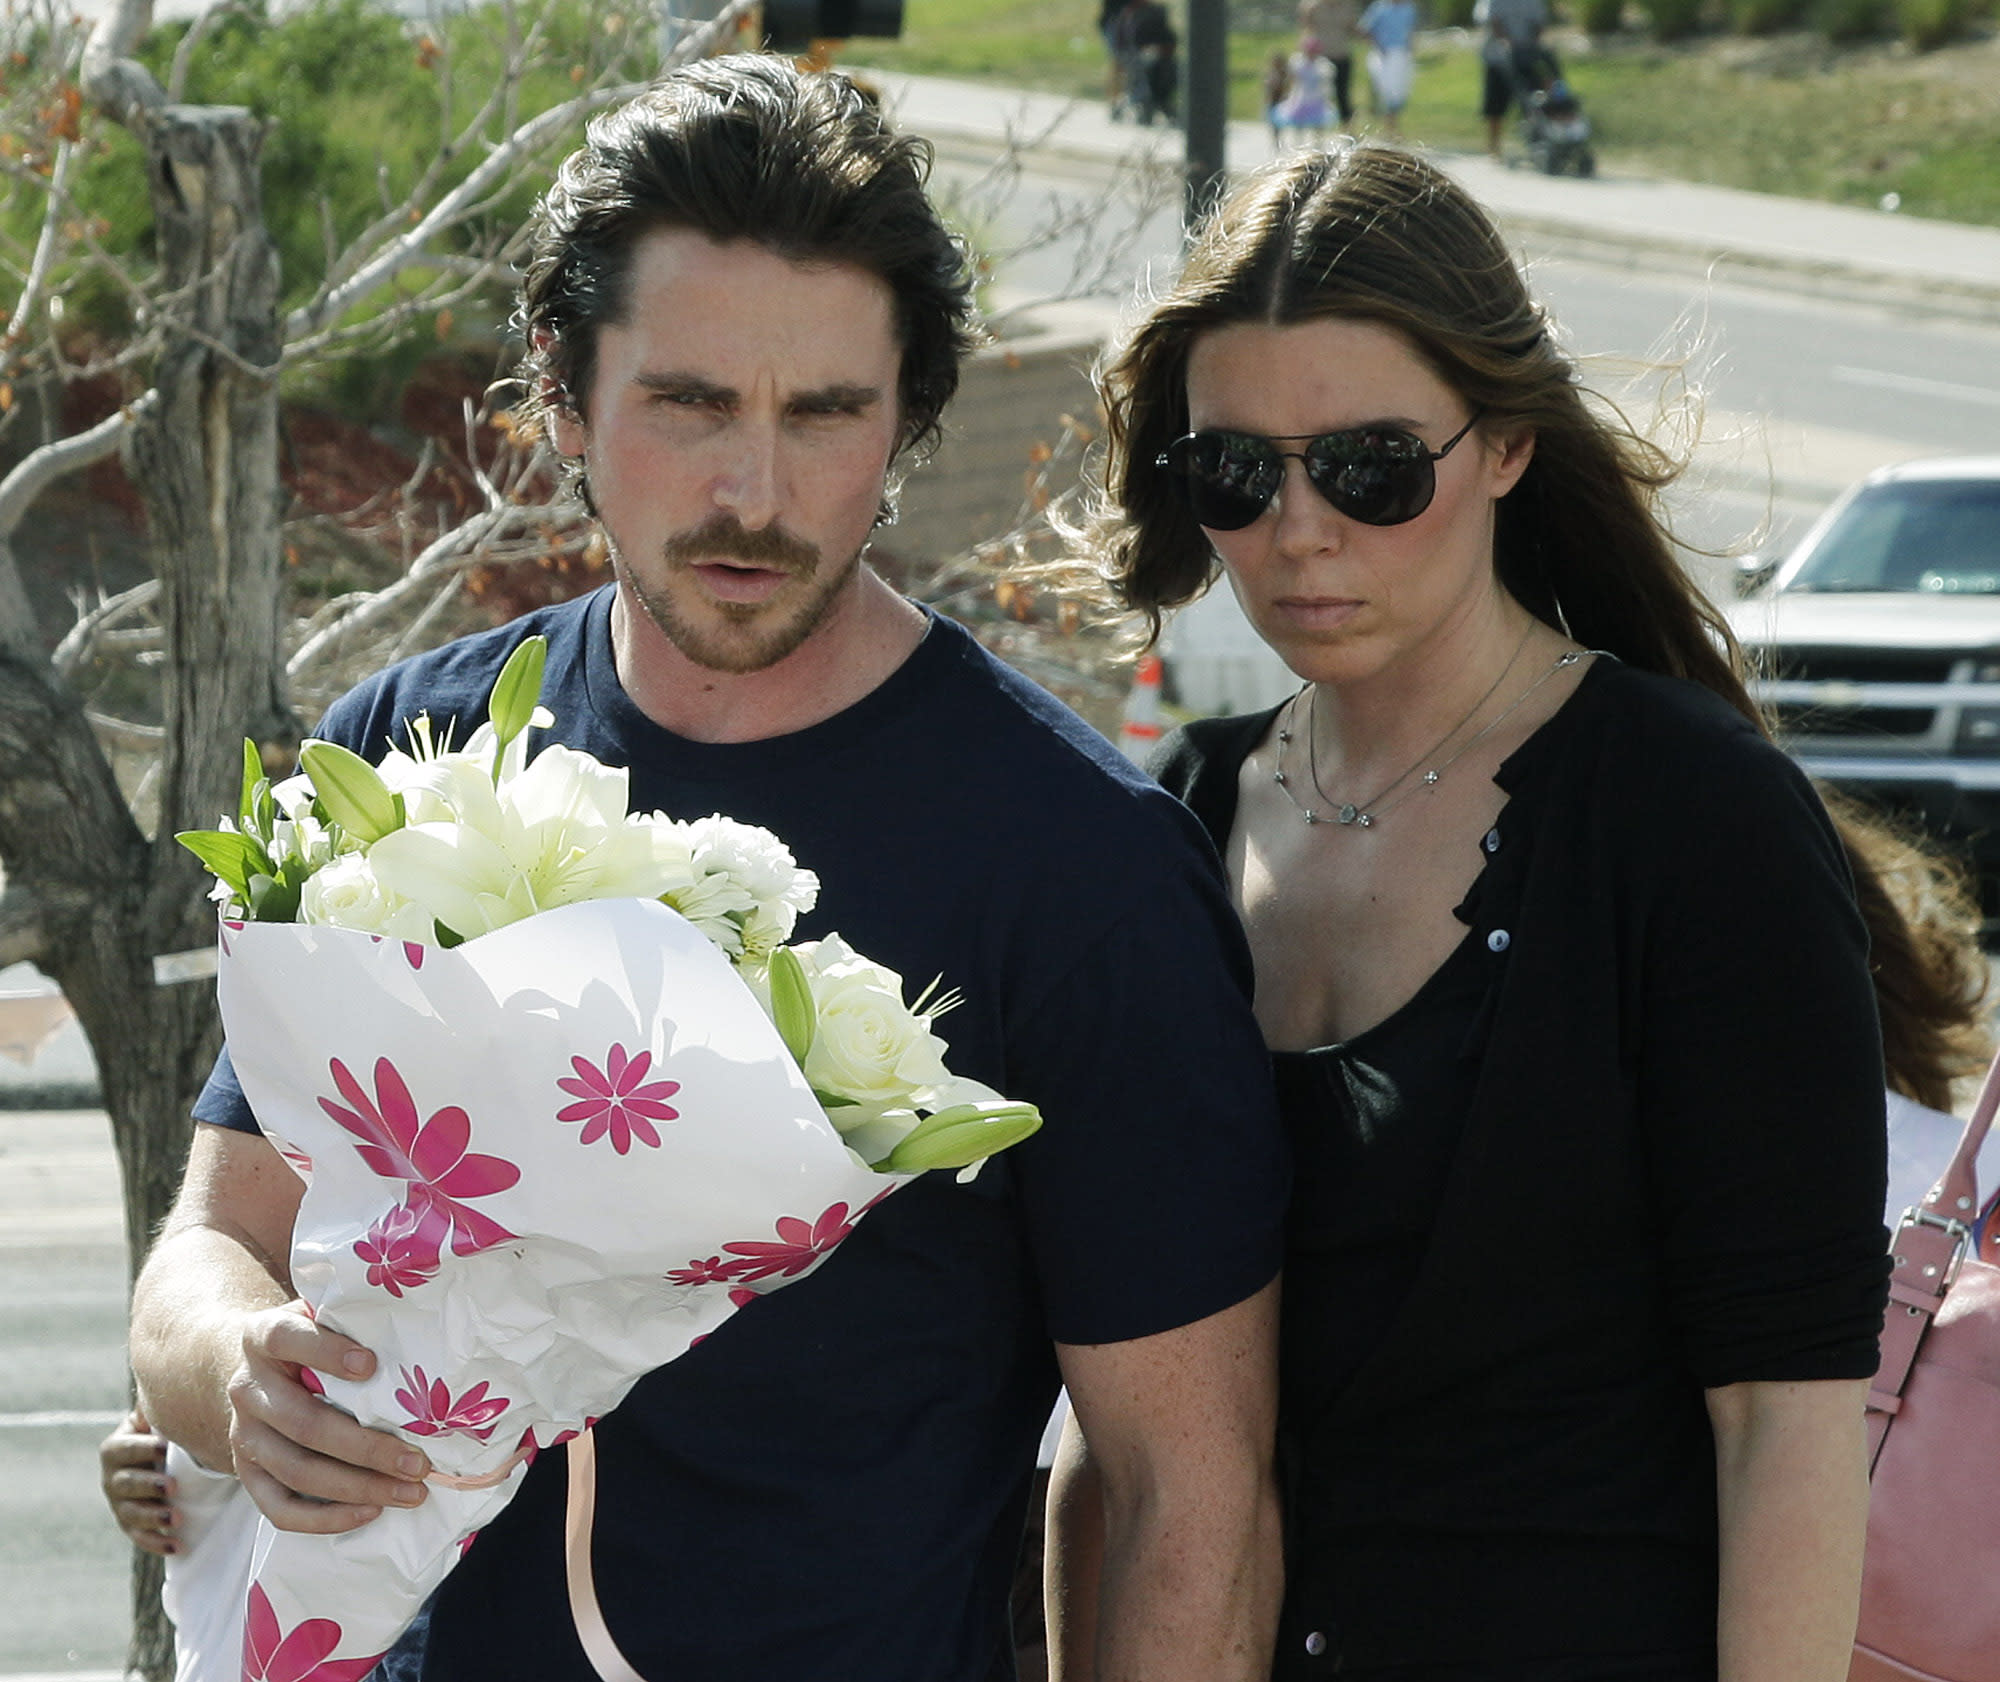 12 Killed 58 Injured In Colo Theater Shooting: Christian Bale Visits Aurora Victims